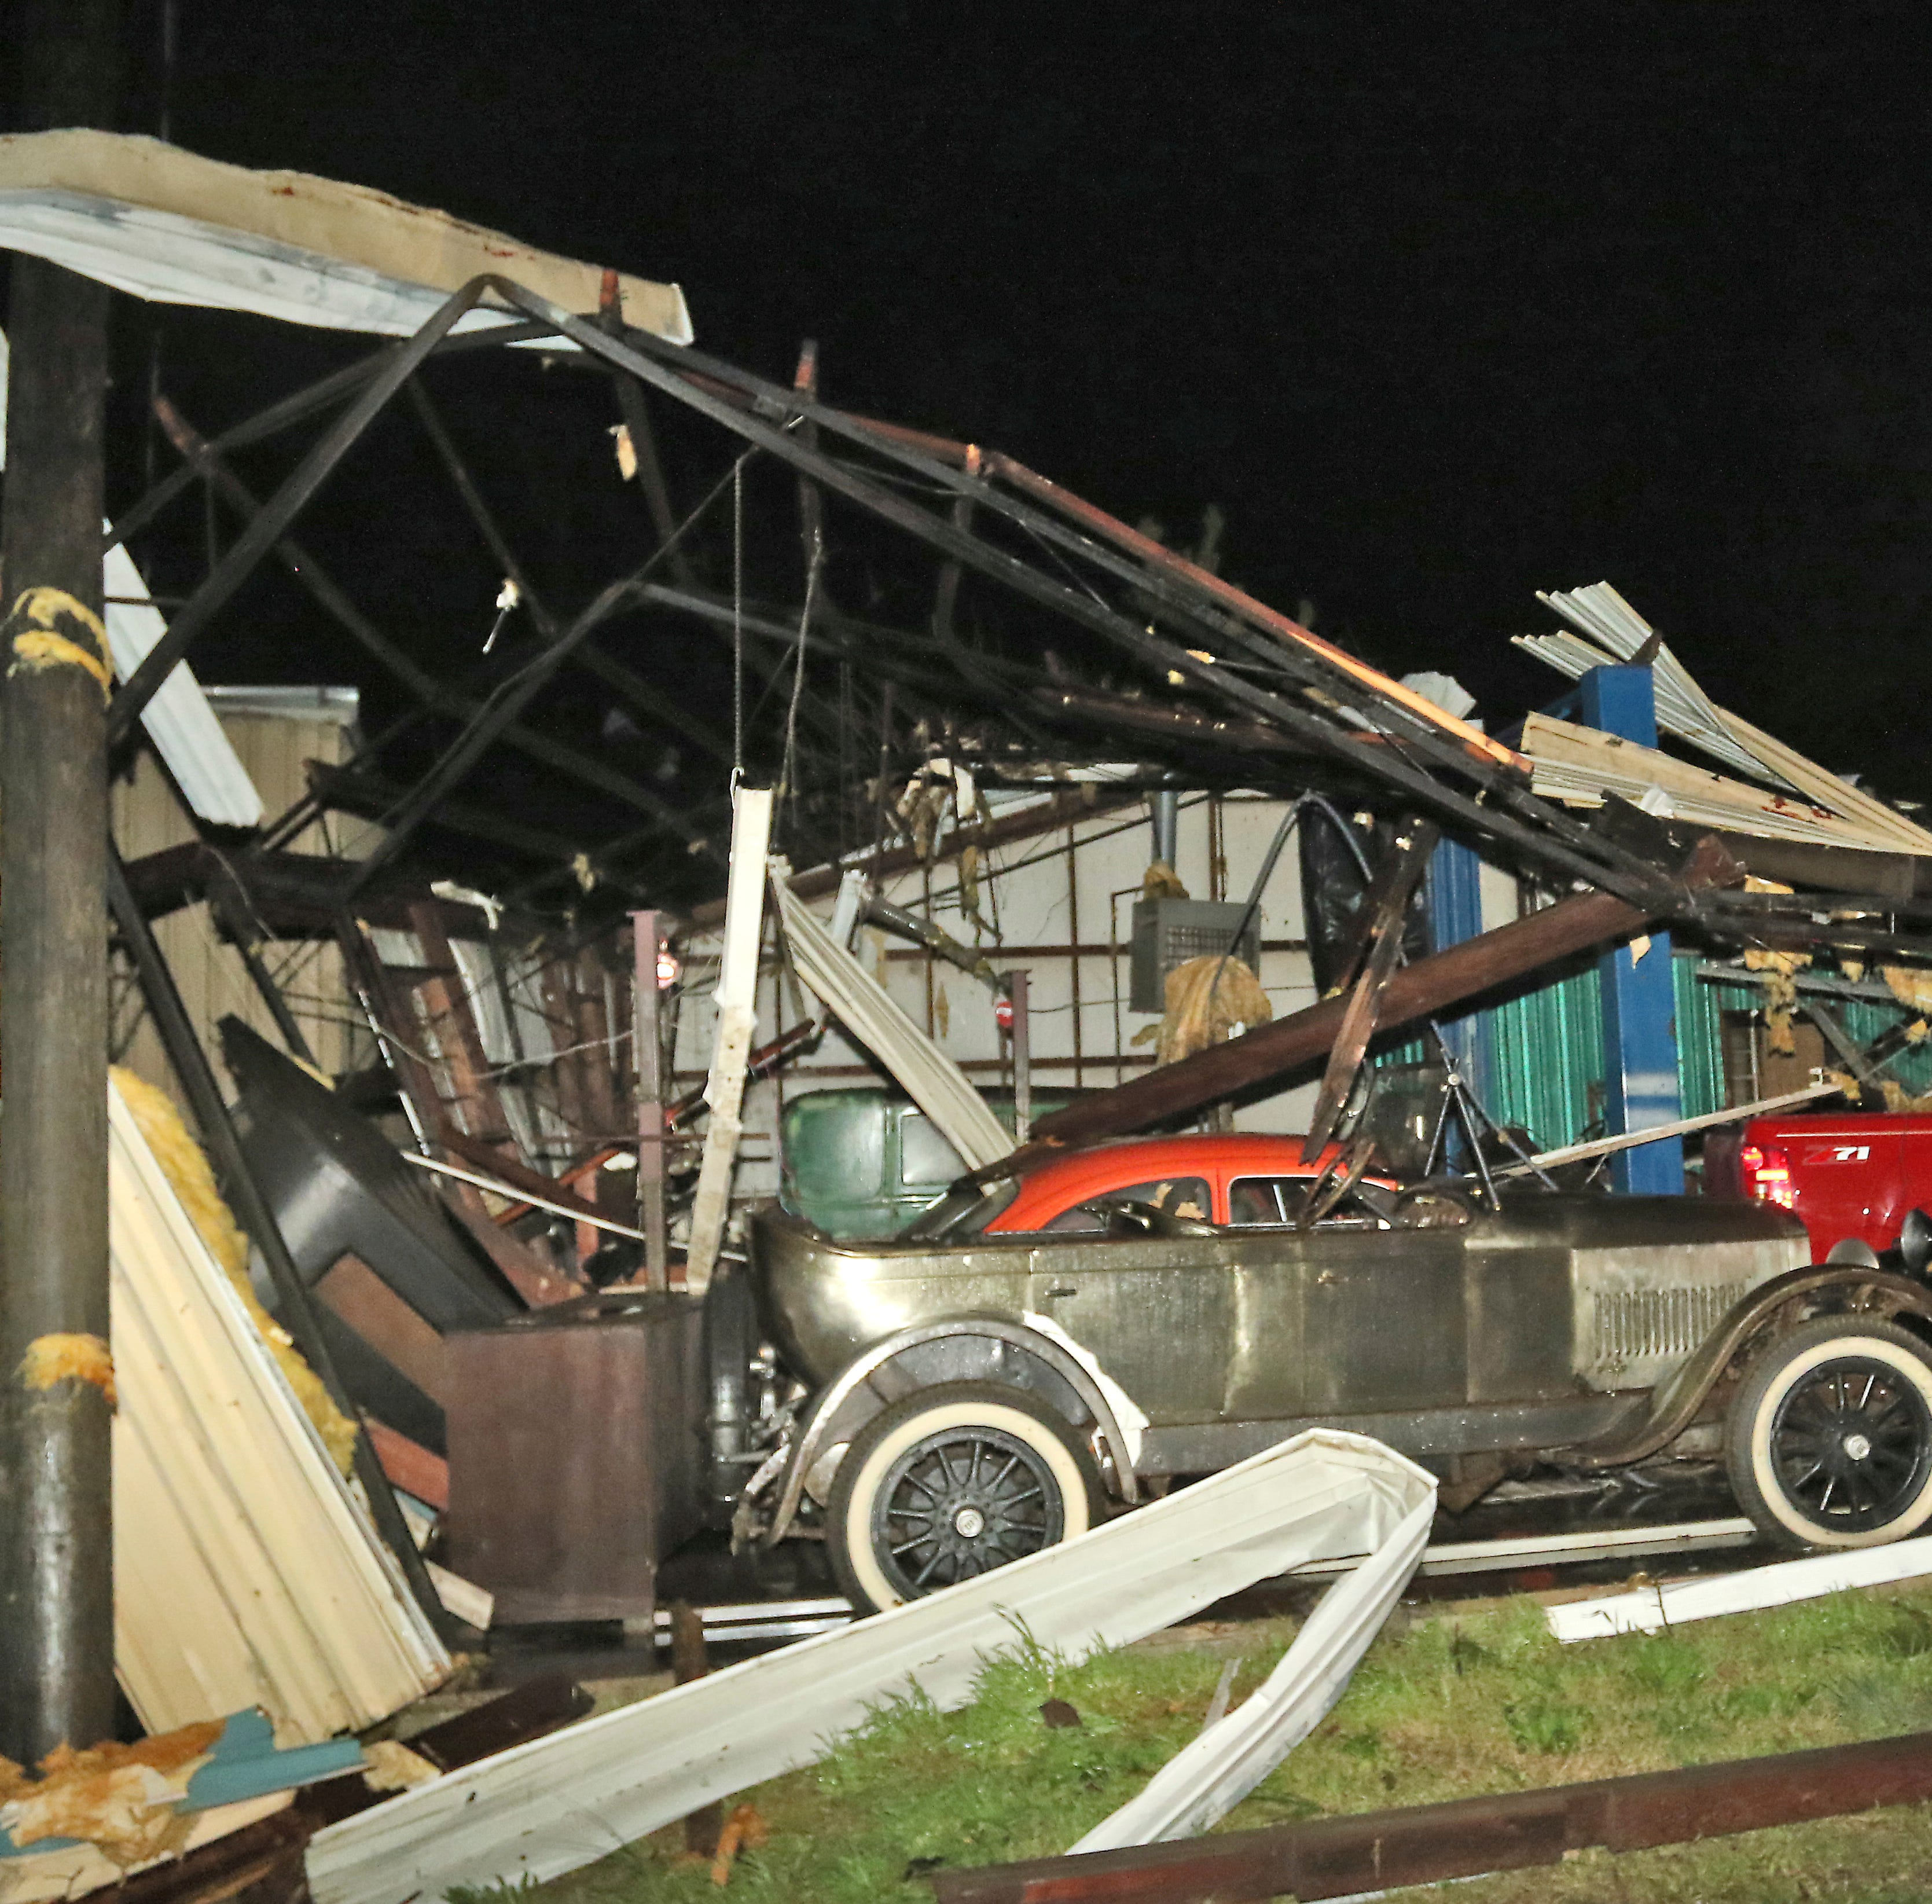 Deadly storms damage hundreds of homes, businesses, bridges and roads in Mississippi